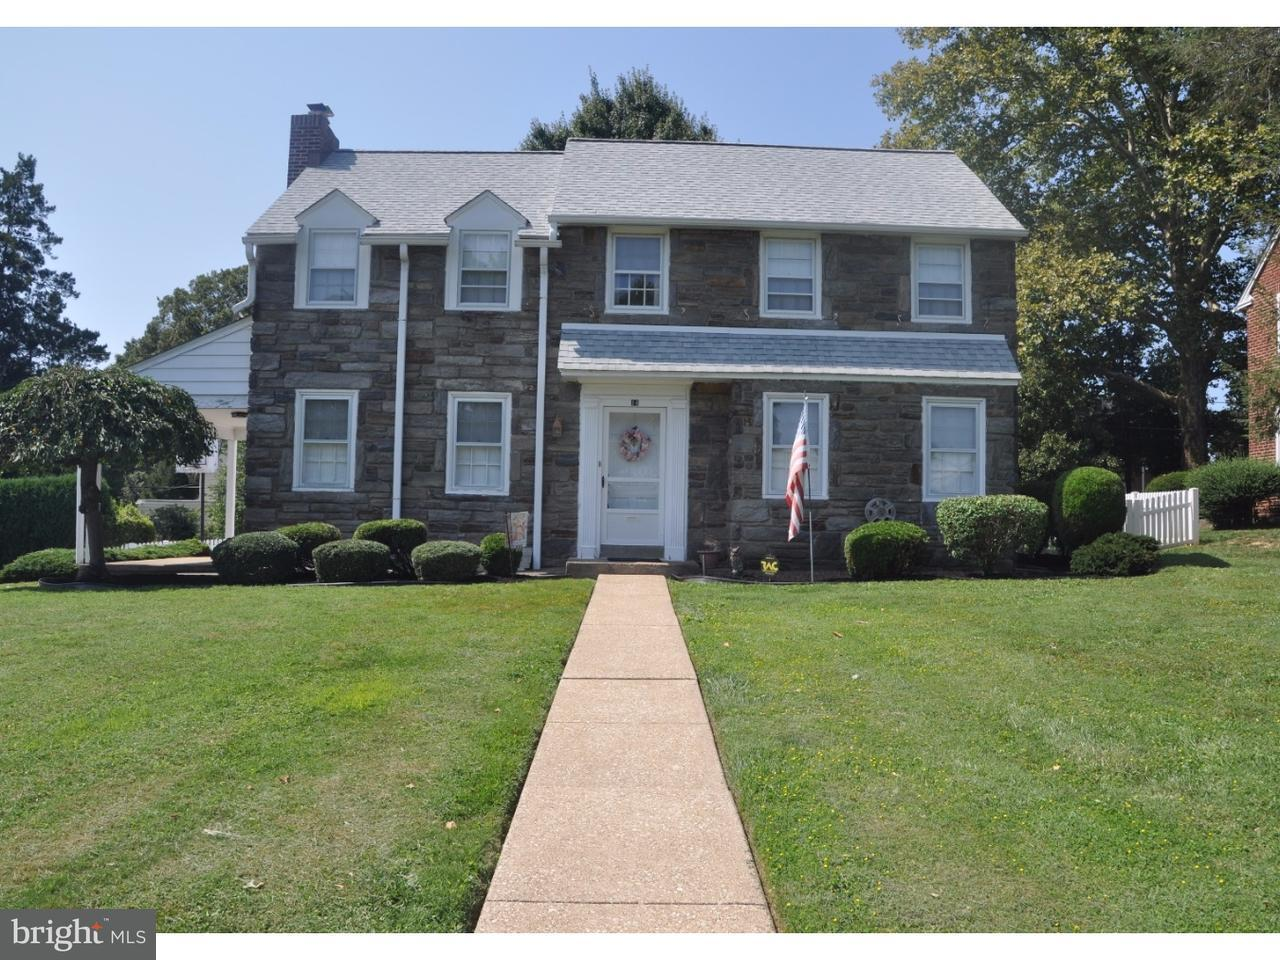 14 N Concord Havertown, PA 19083